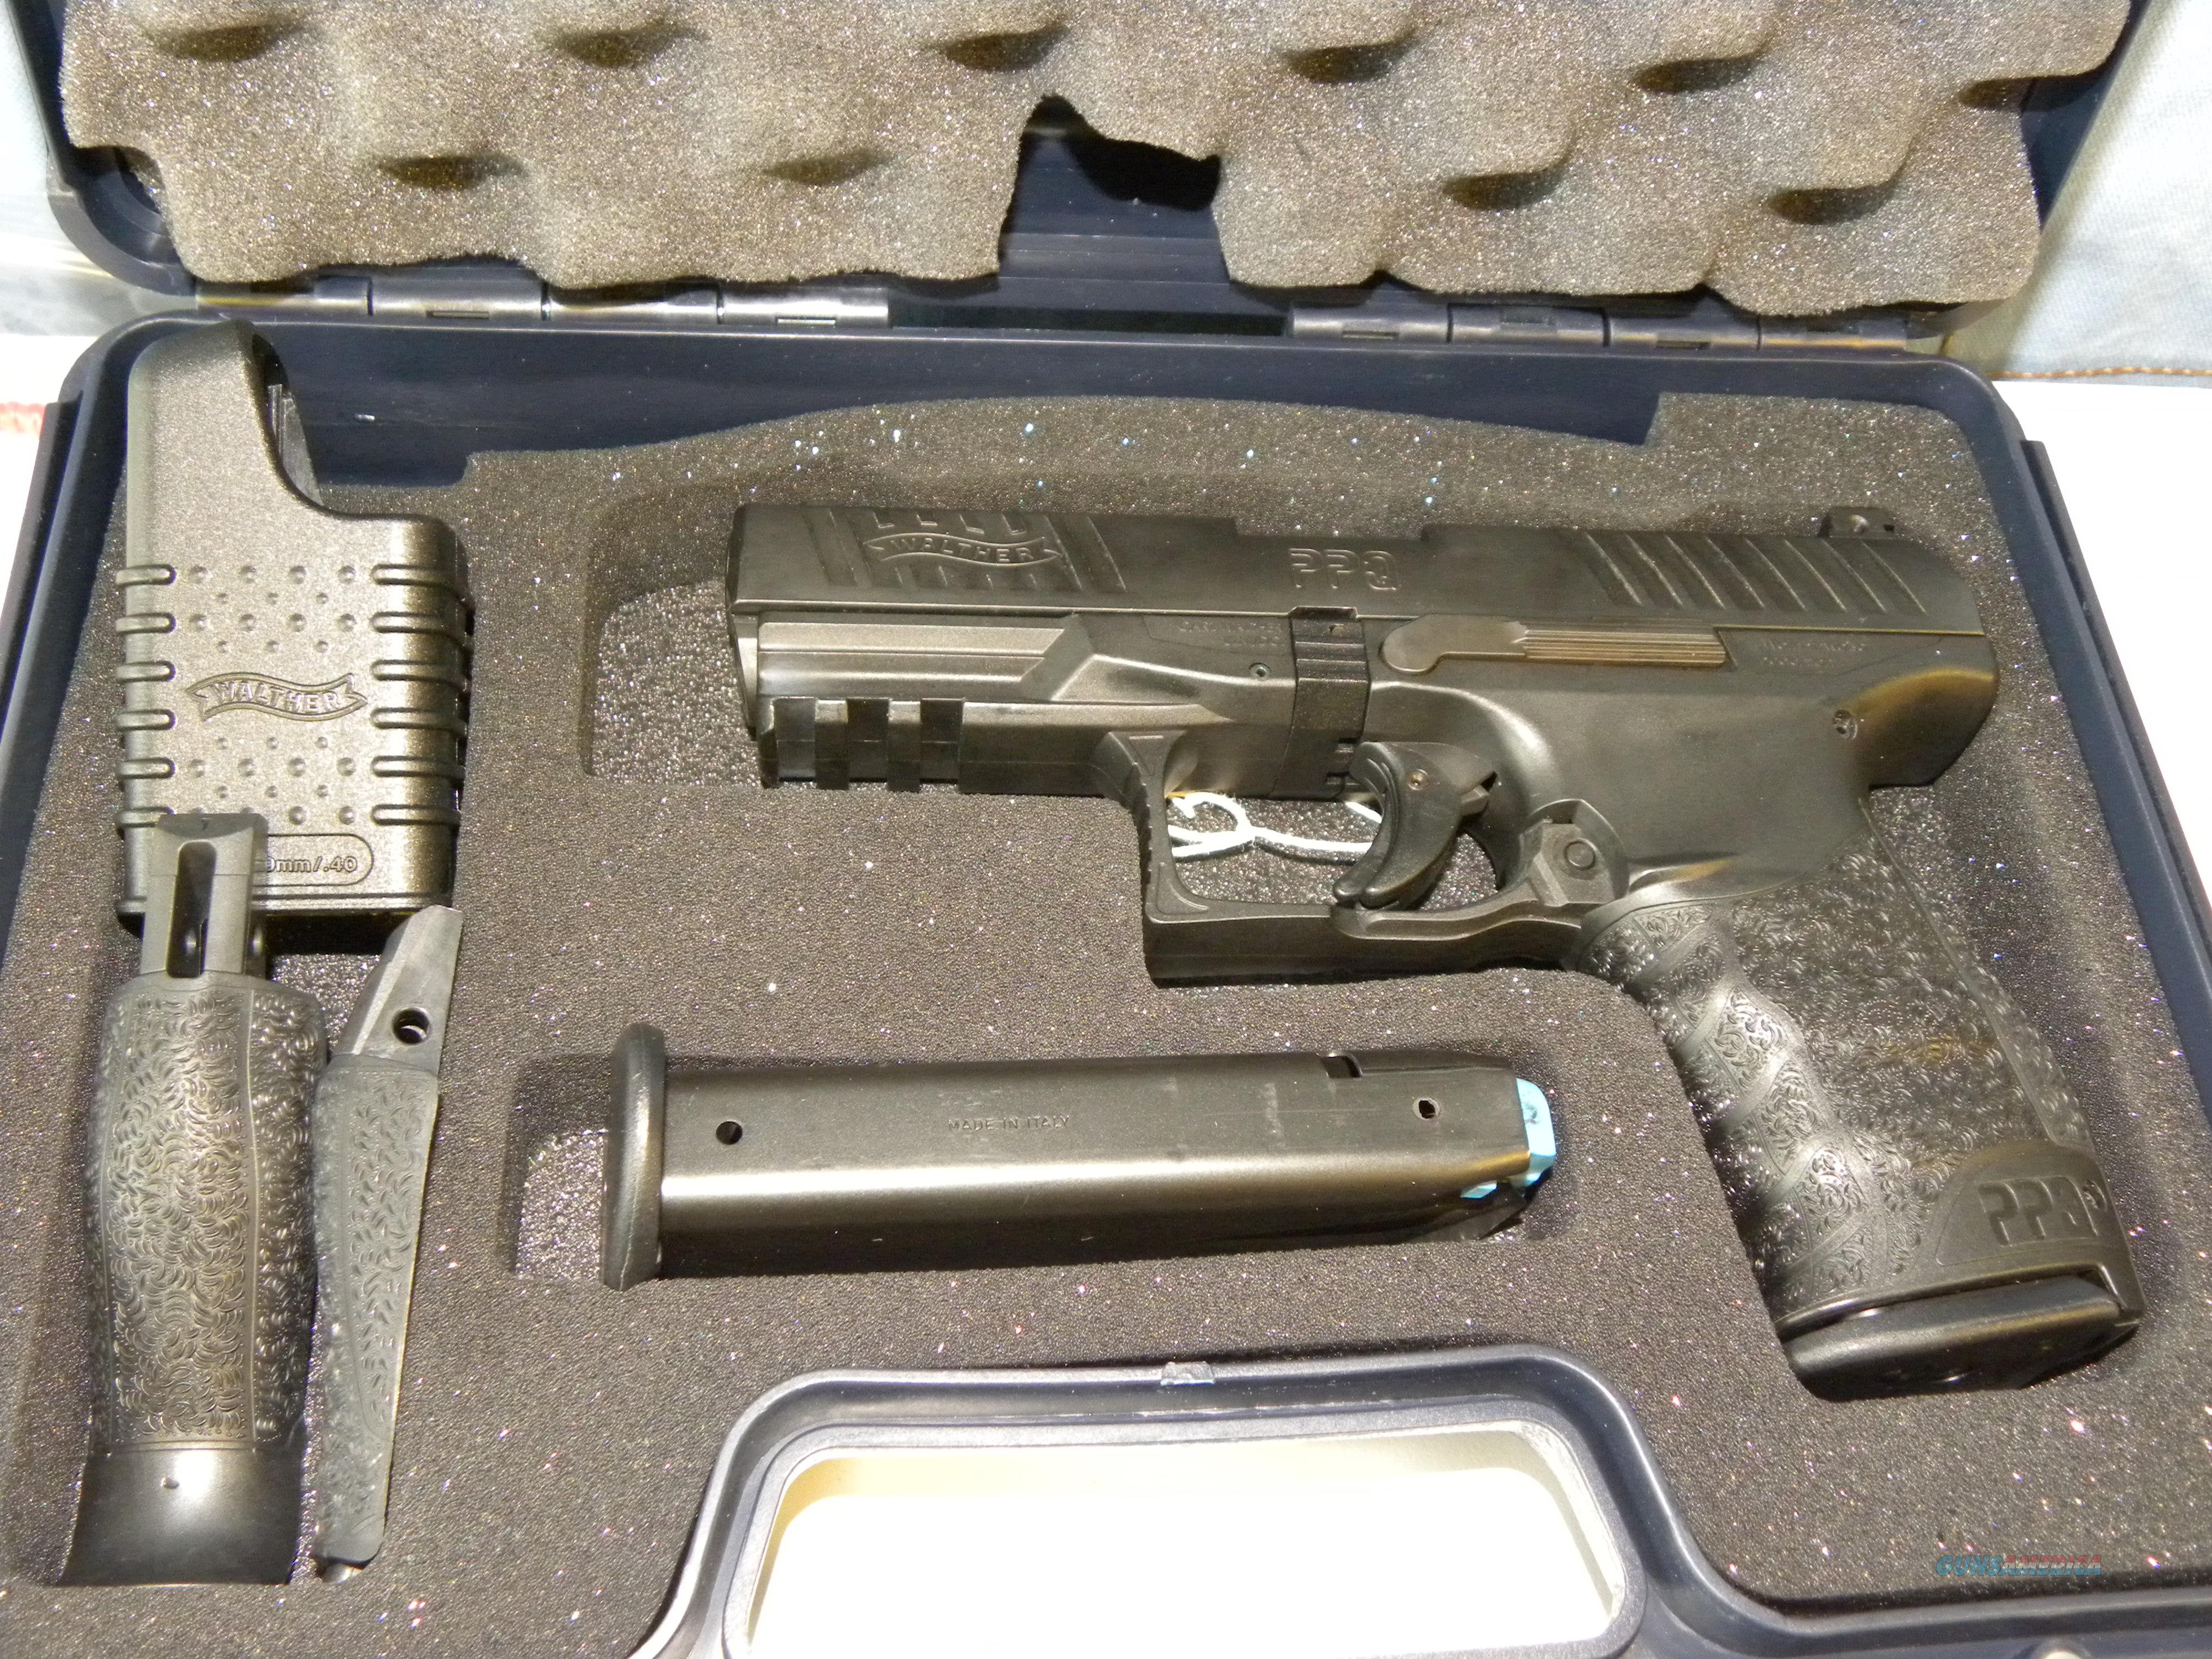 Walther PPQ .40 S&W  Guns > Pistols > Walther Pistols > Post WWII > P99/PPQ